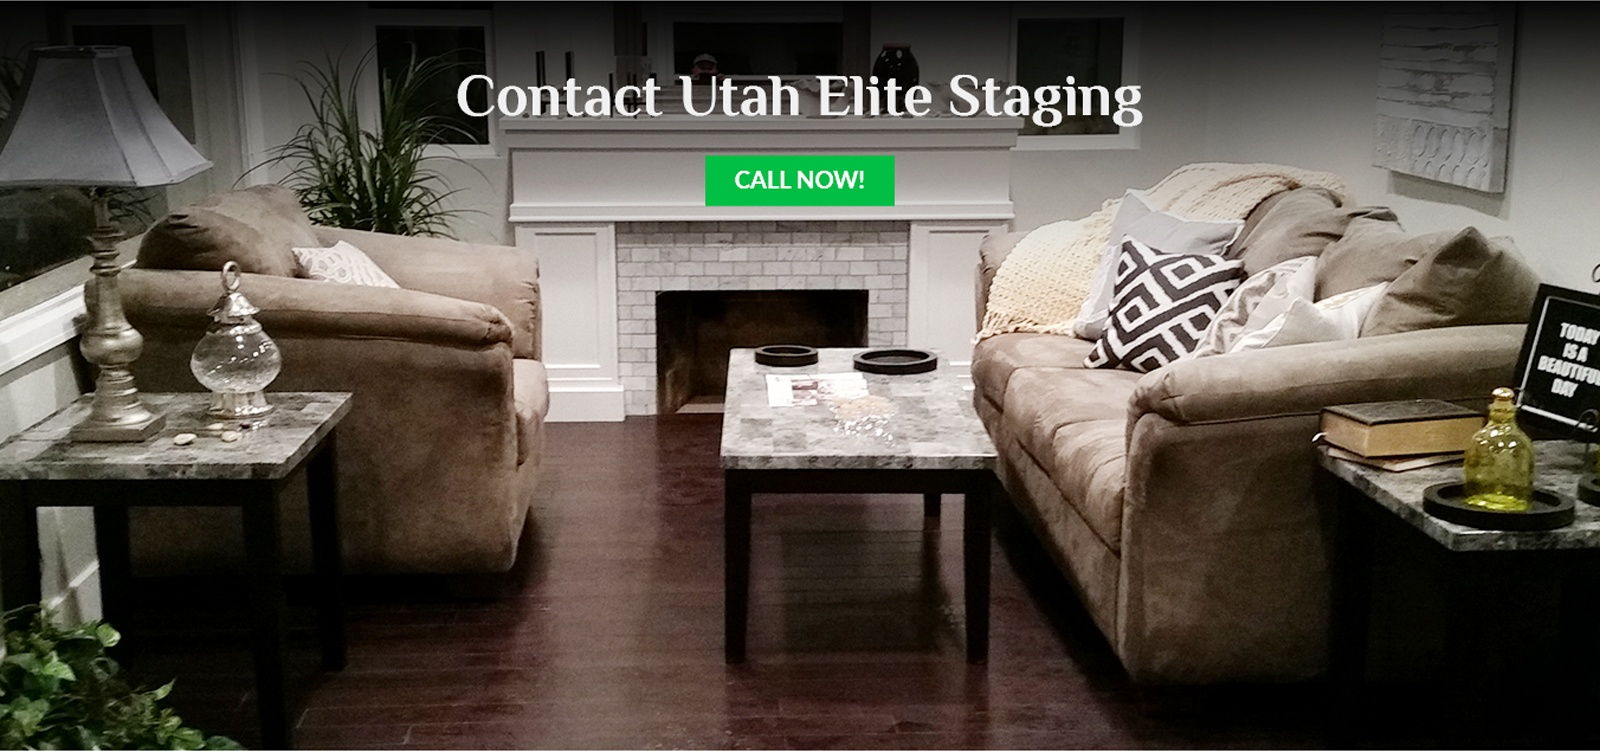 contact Utah Elite Staging